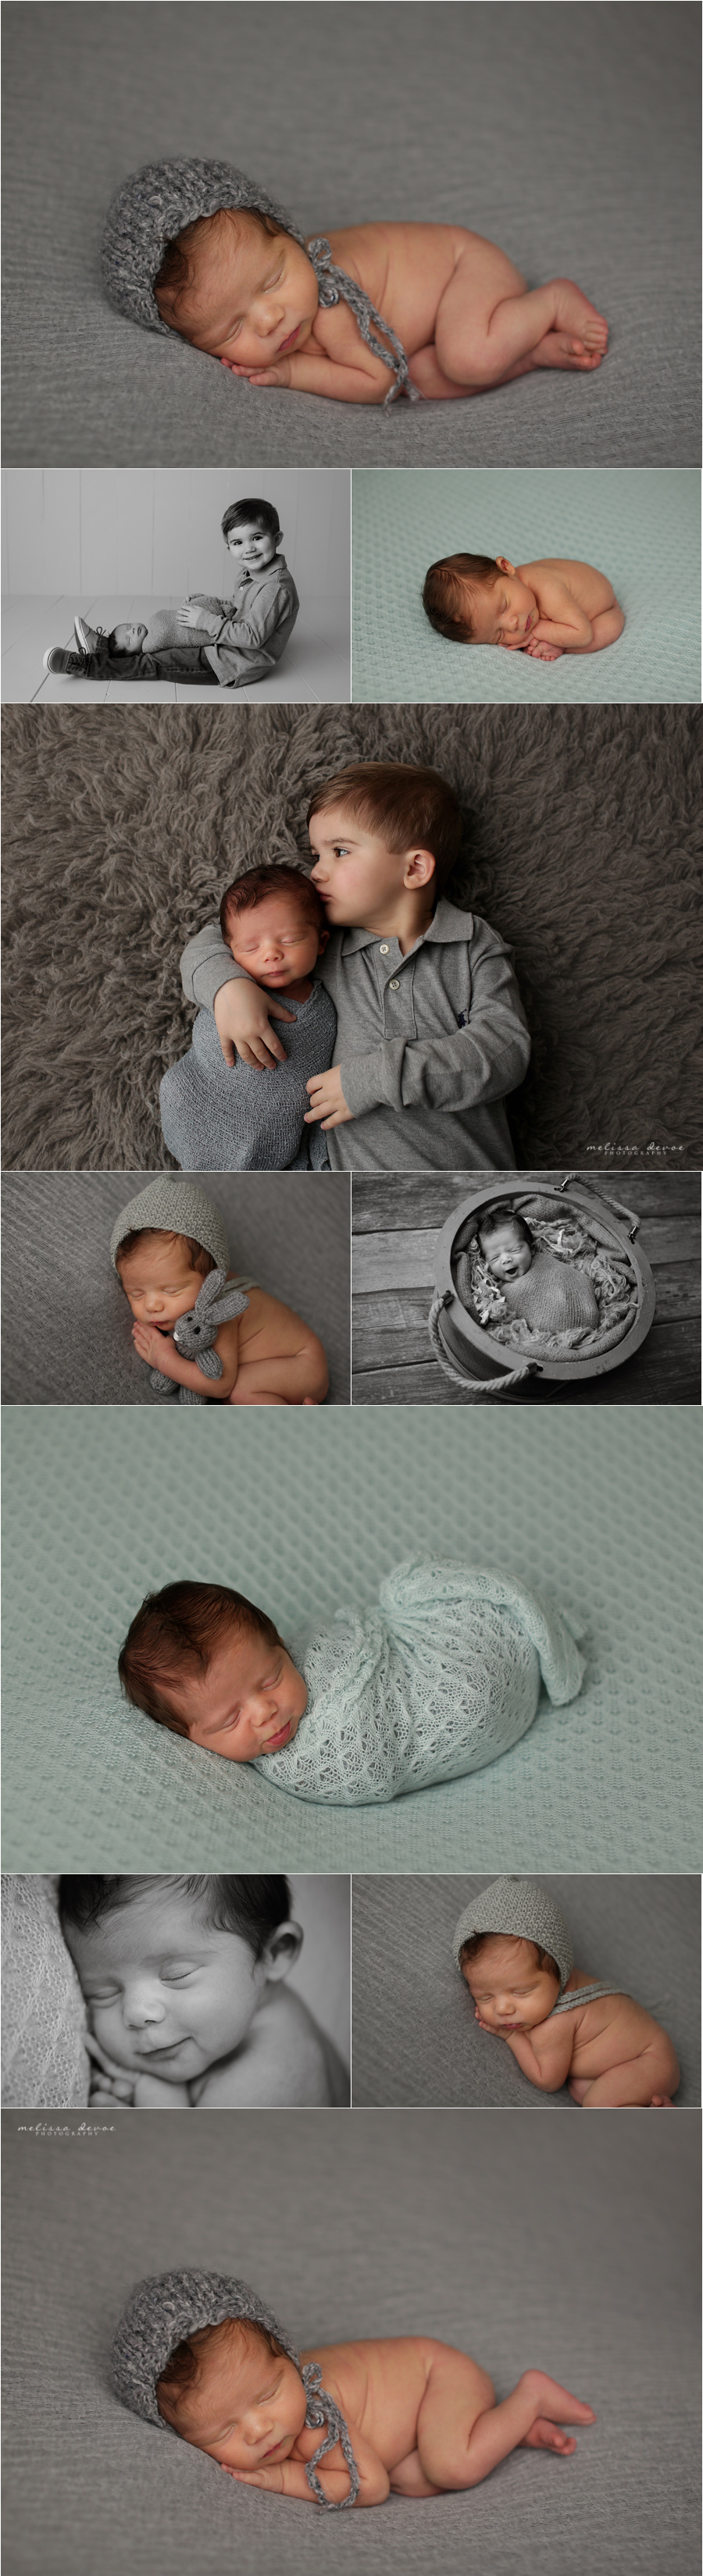 Melissa DeVoe Photography Raleigh NC Best Newborn Baby Photographer 2